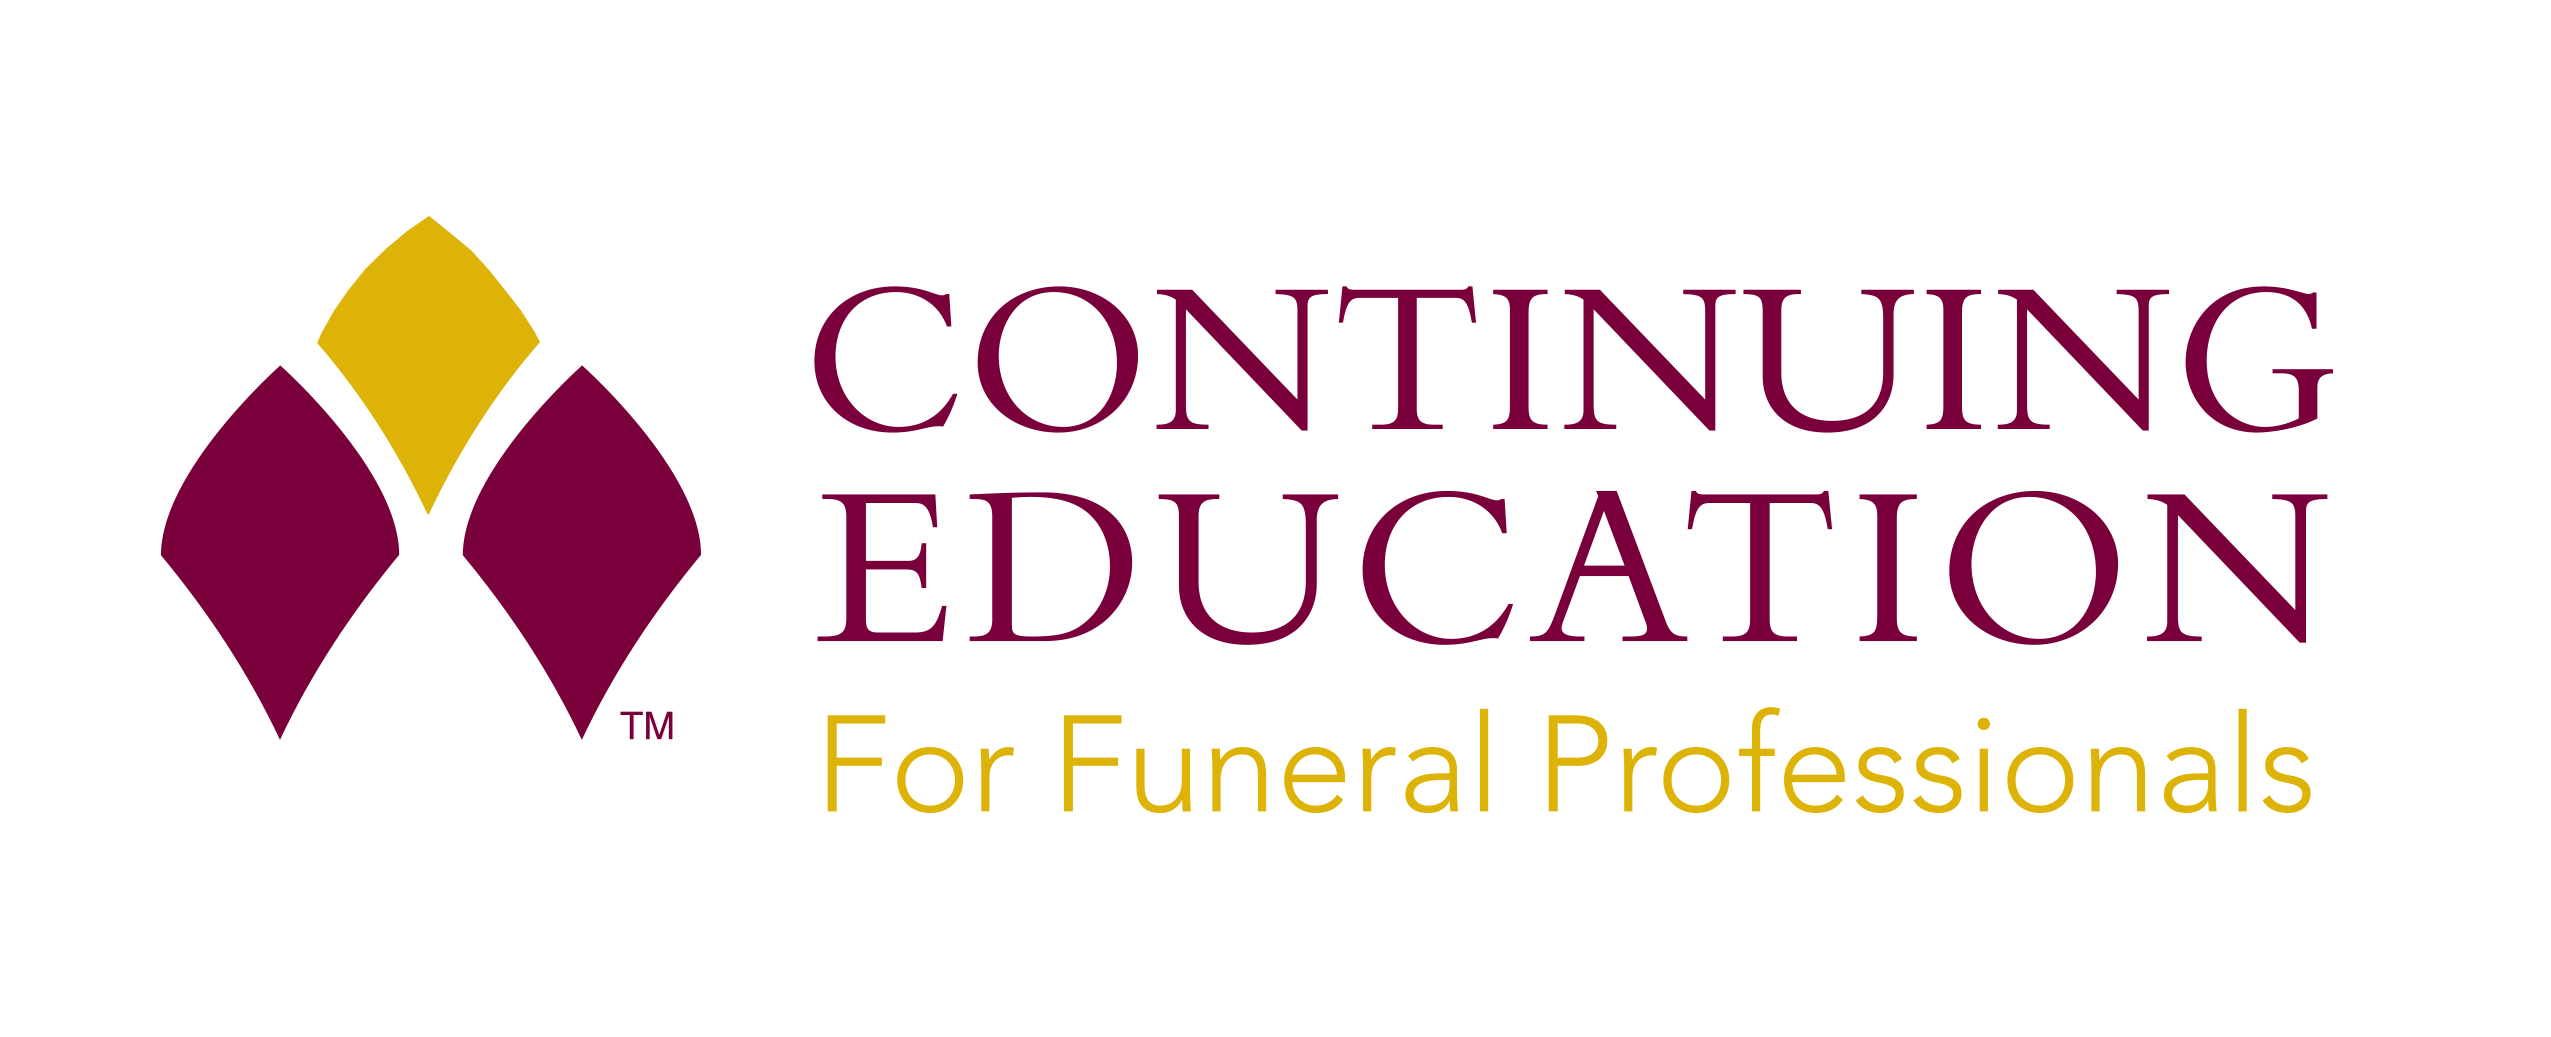 Continuing Education Program for Funeral Professionals